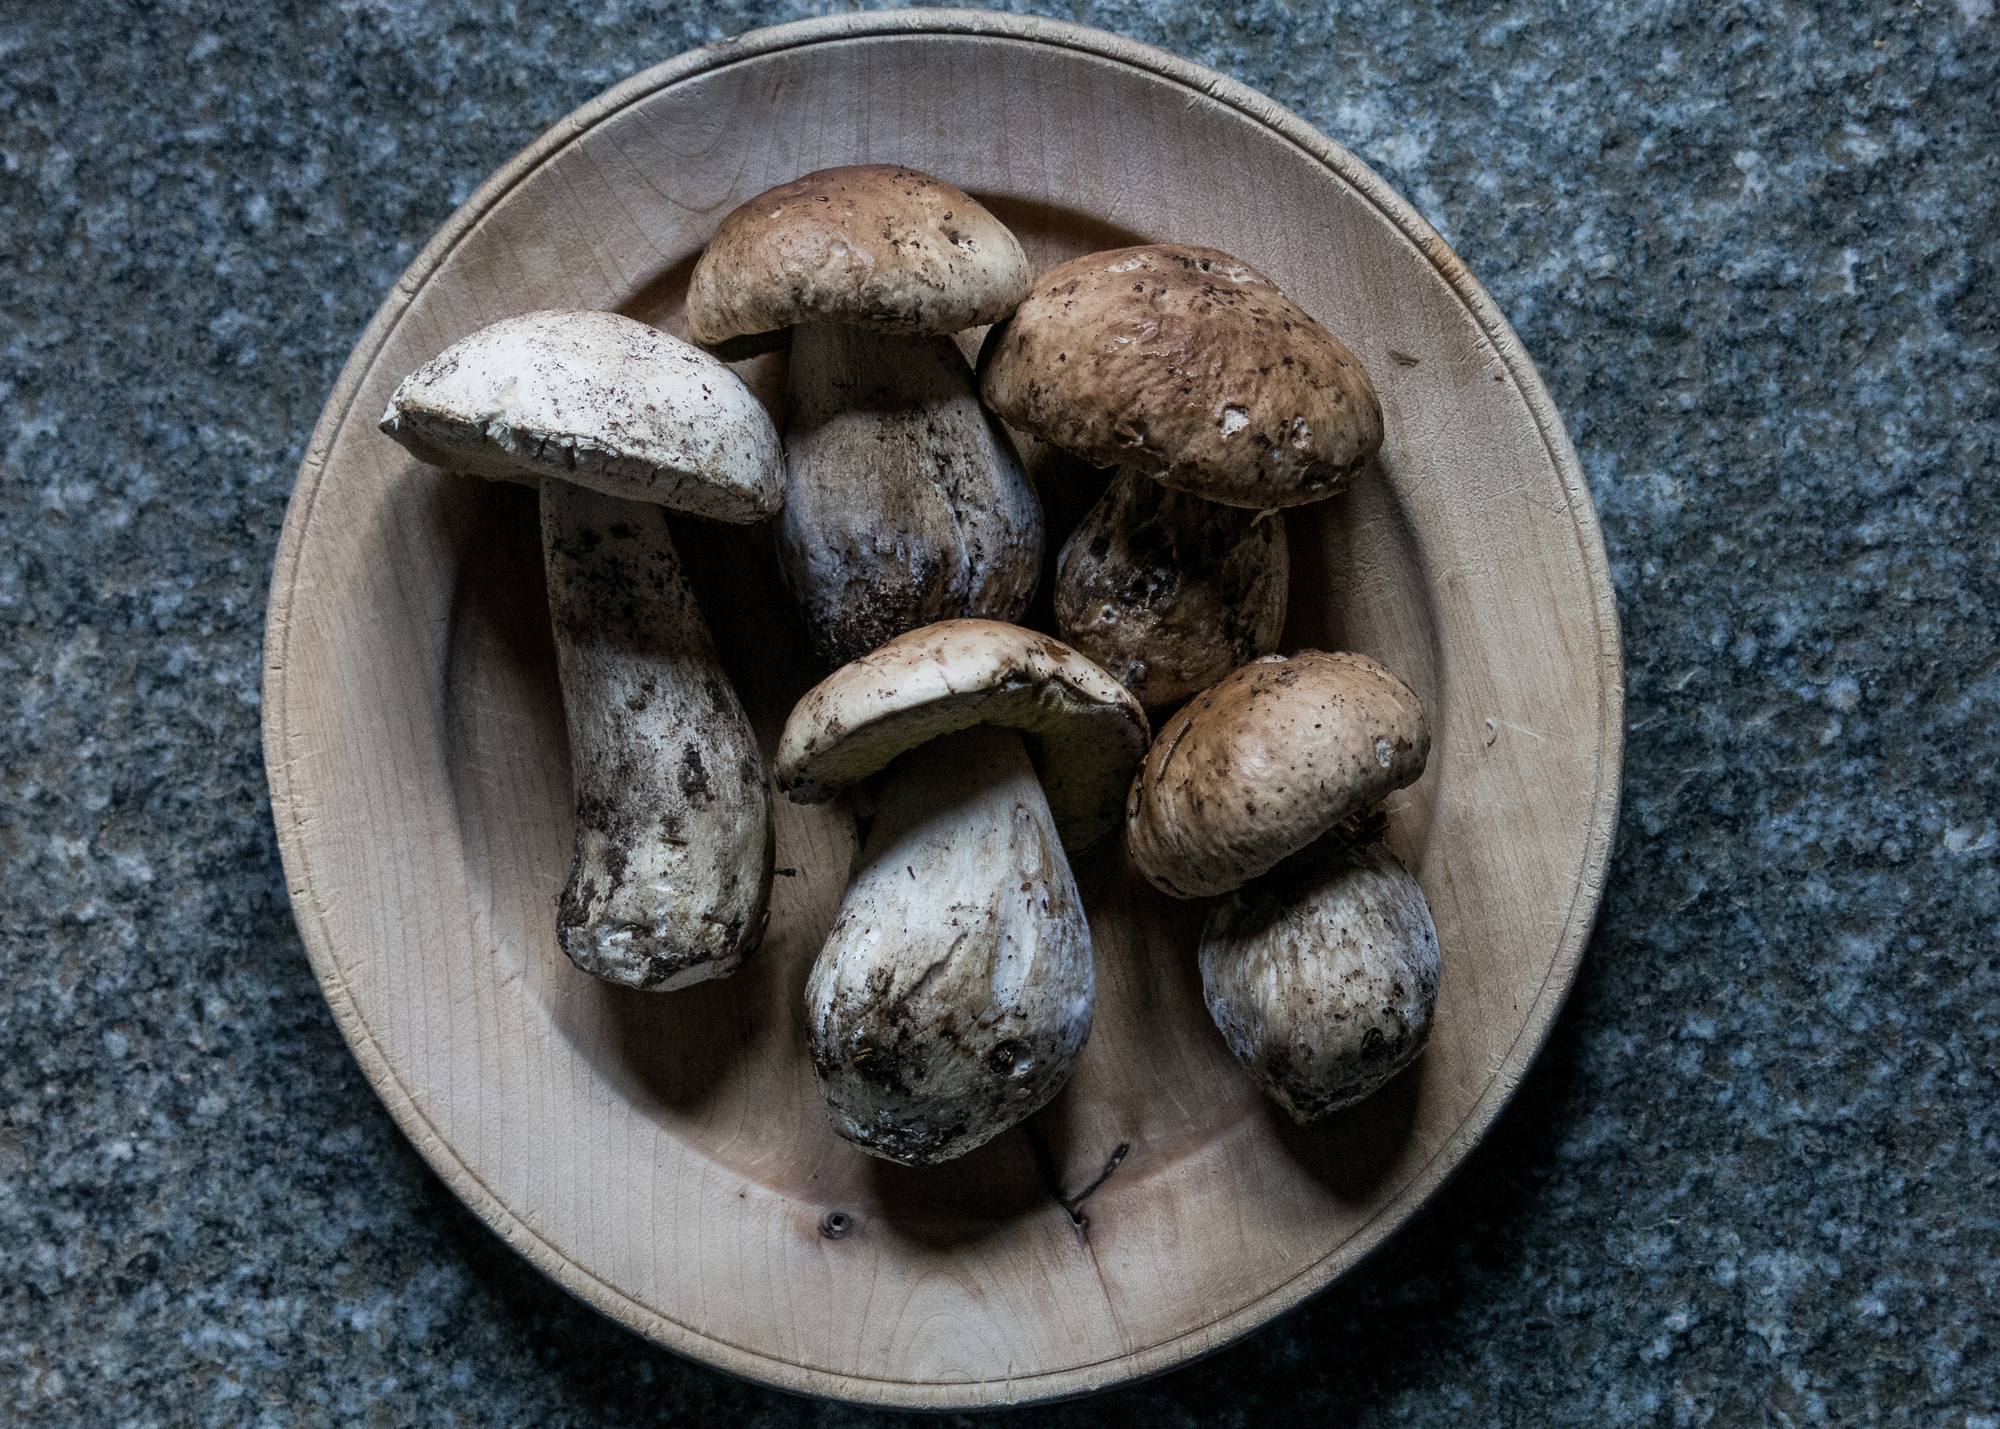 Porcini mushrooms.